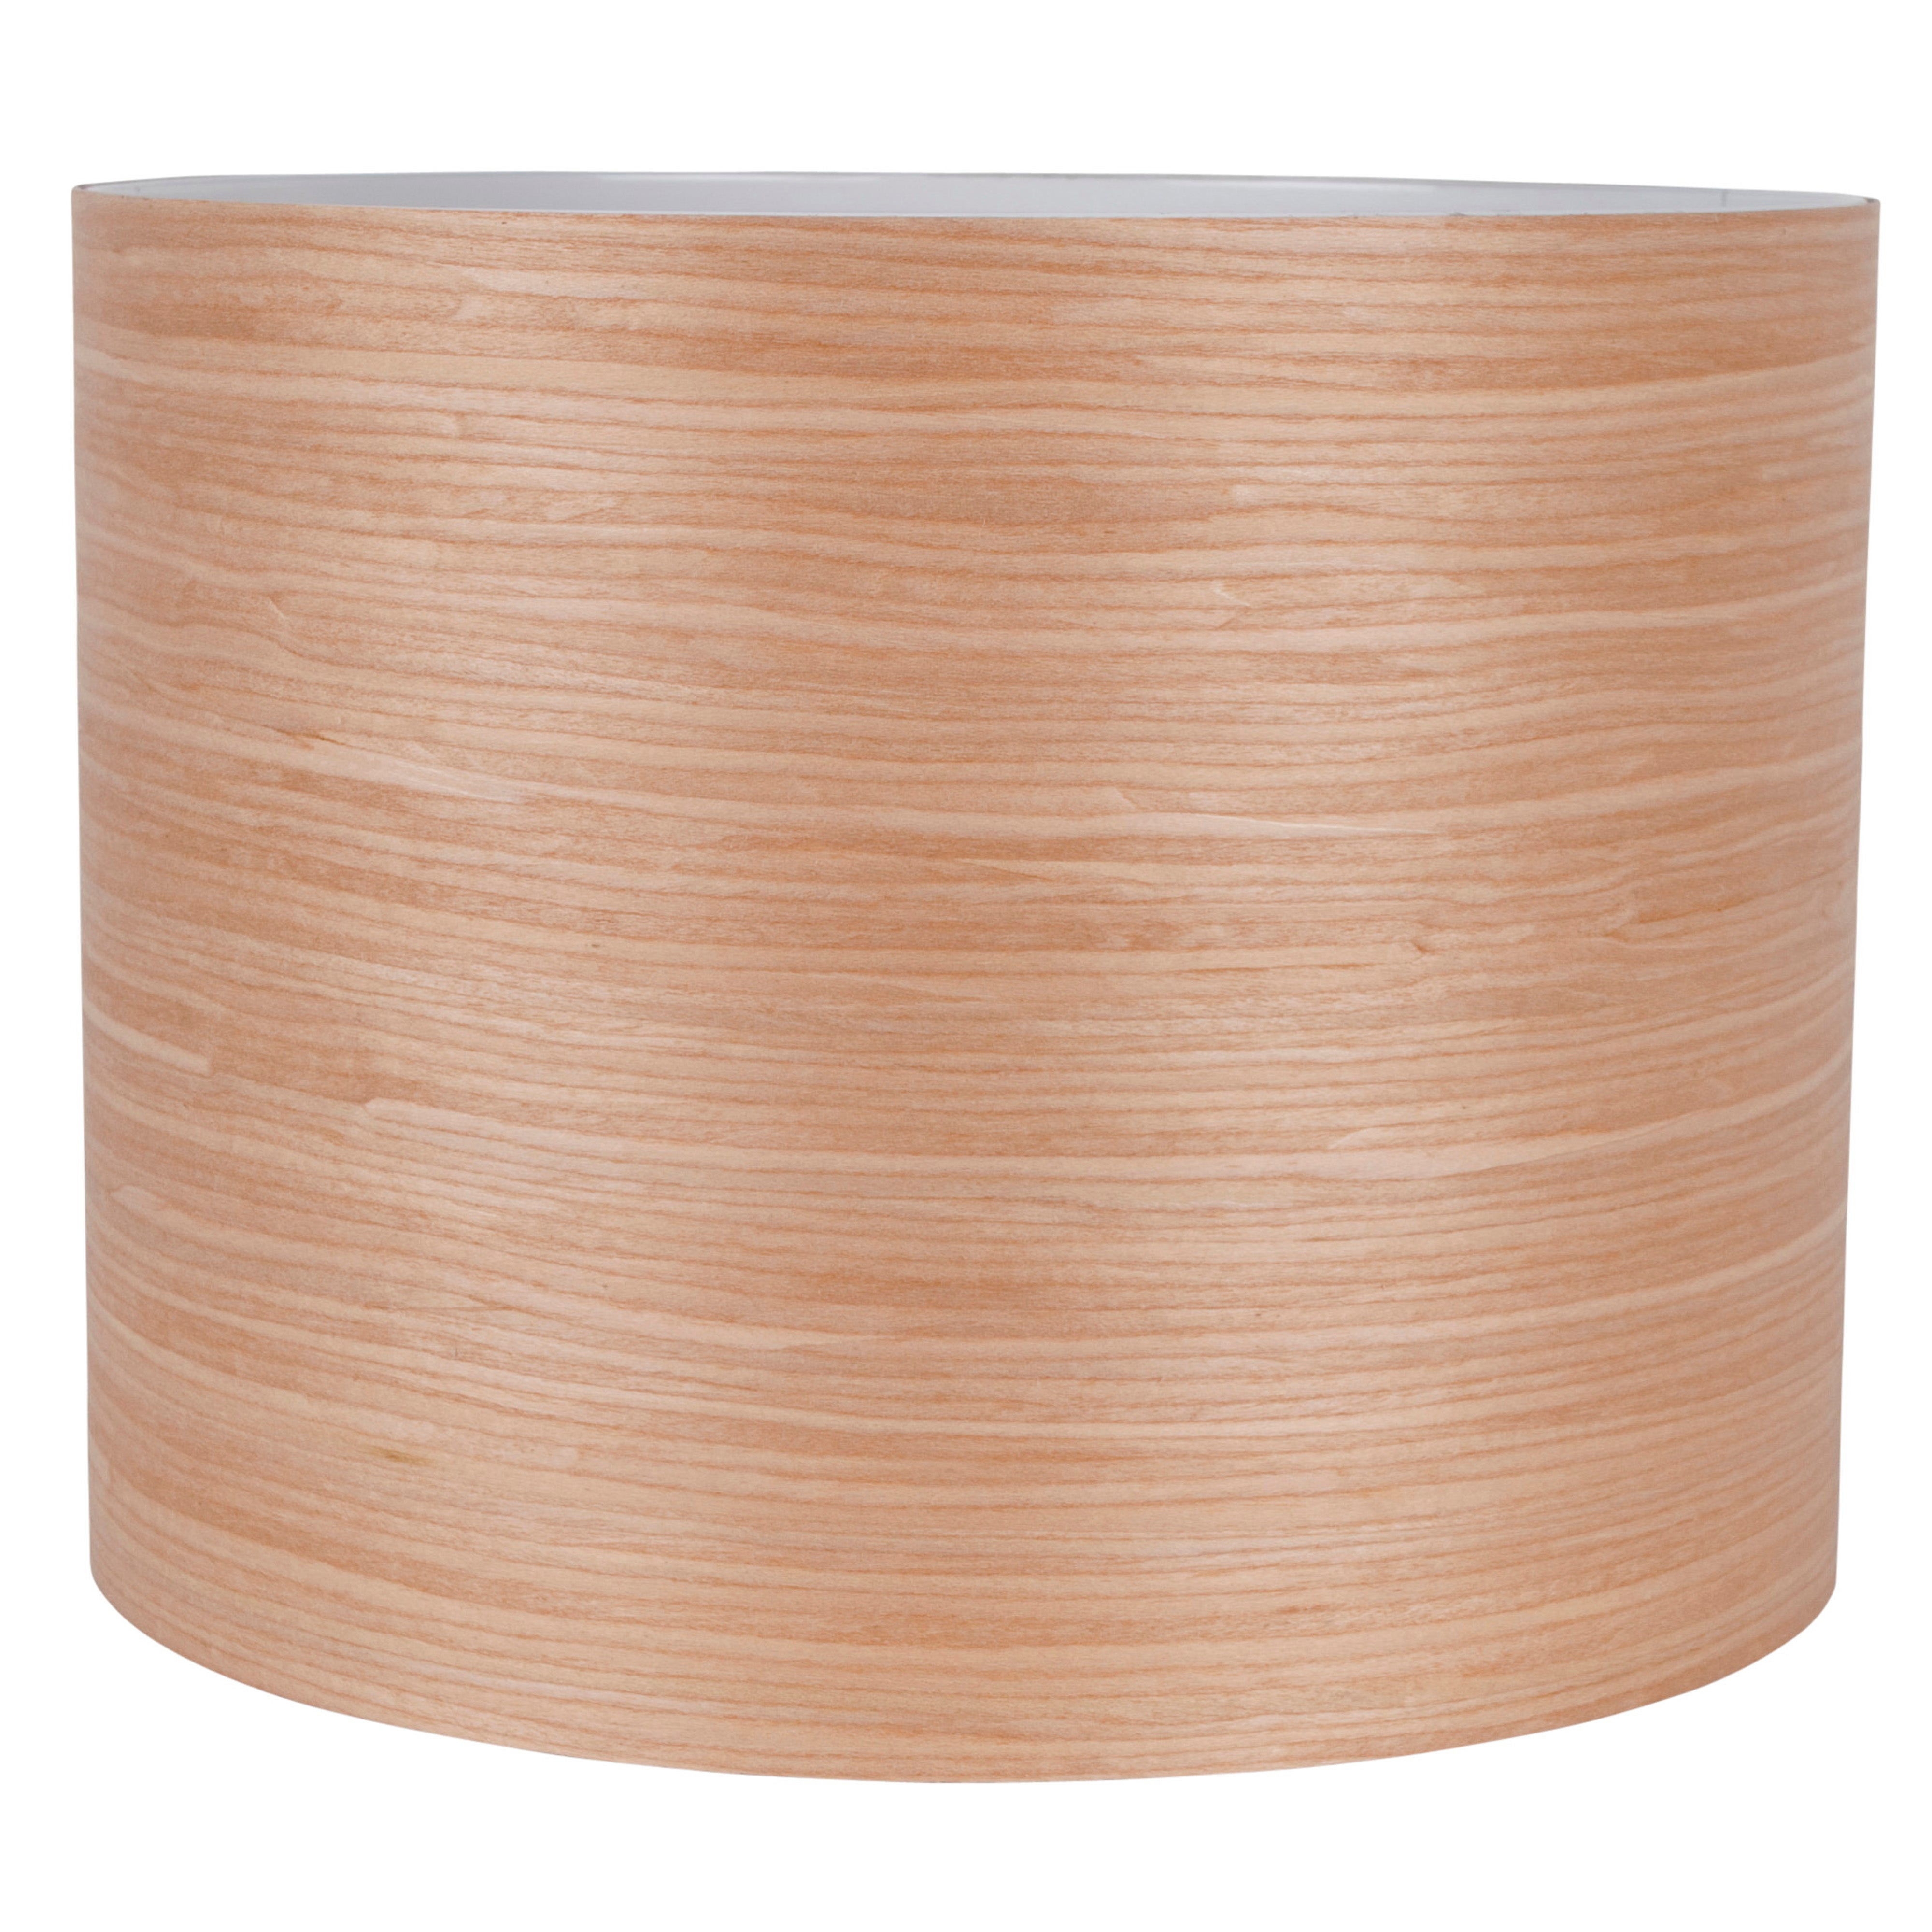 Wood Veneer Cylinder Light Shade